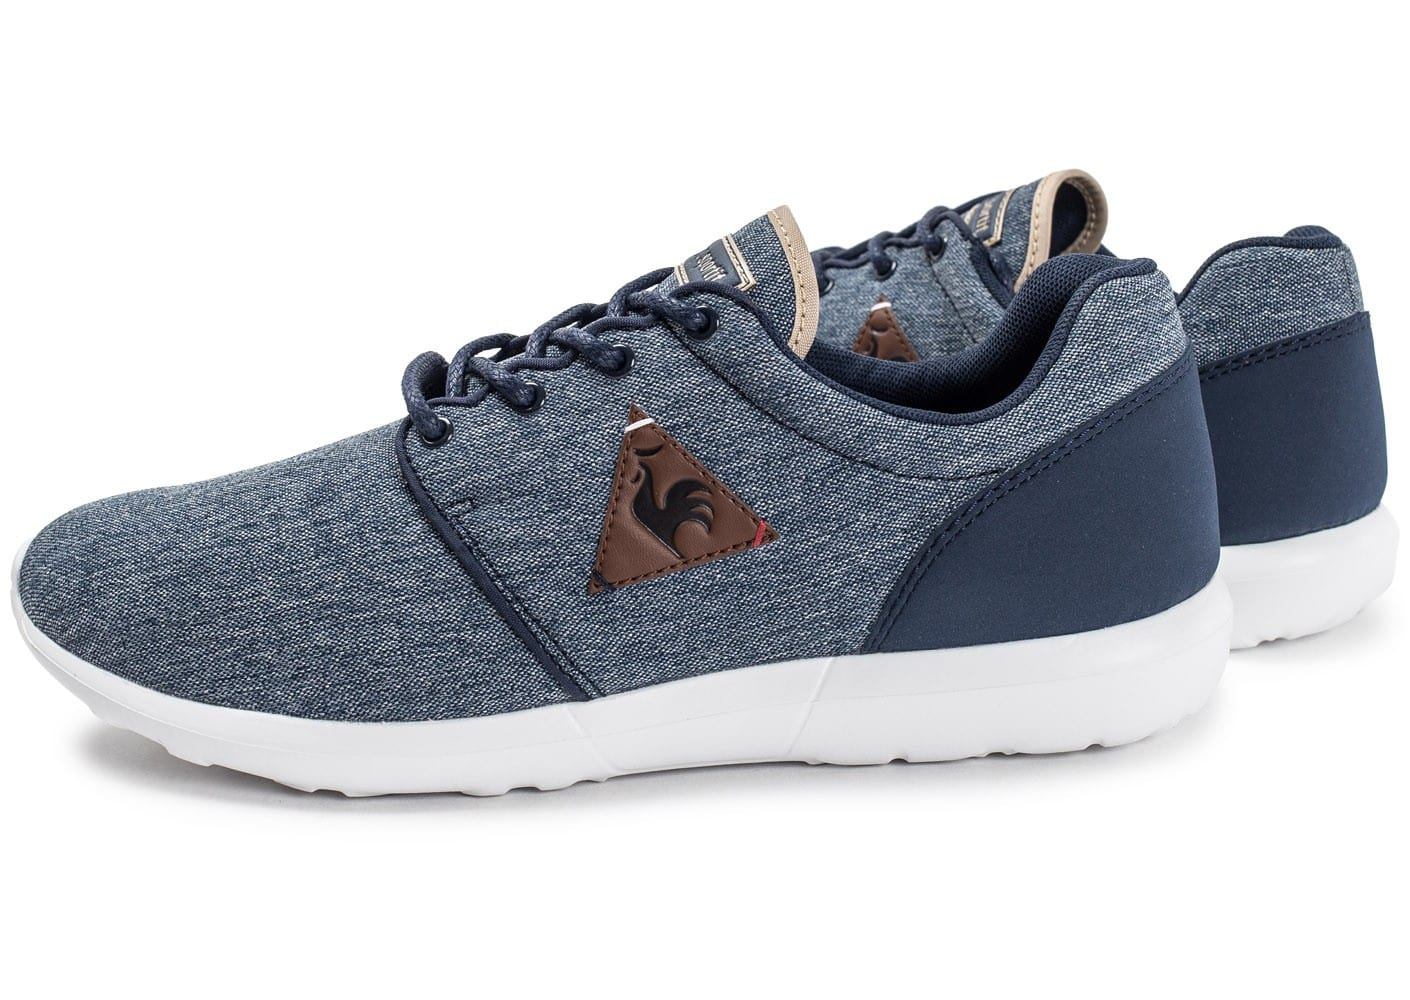 Shoes Coq Sportif